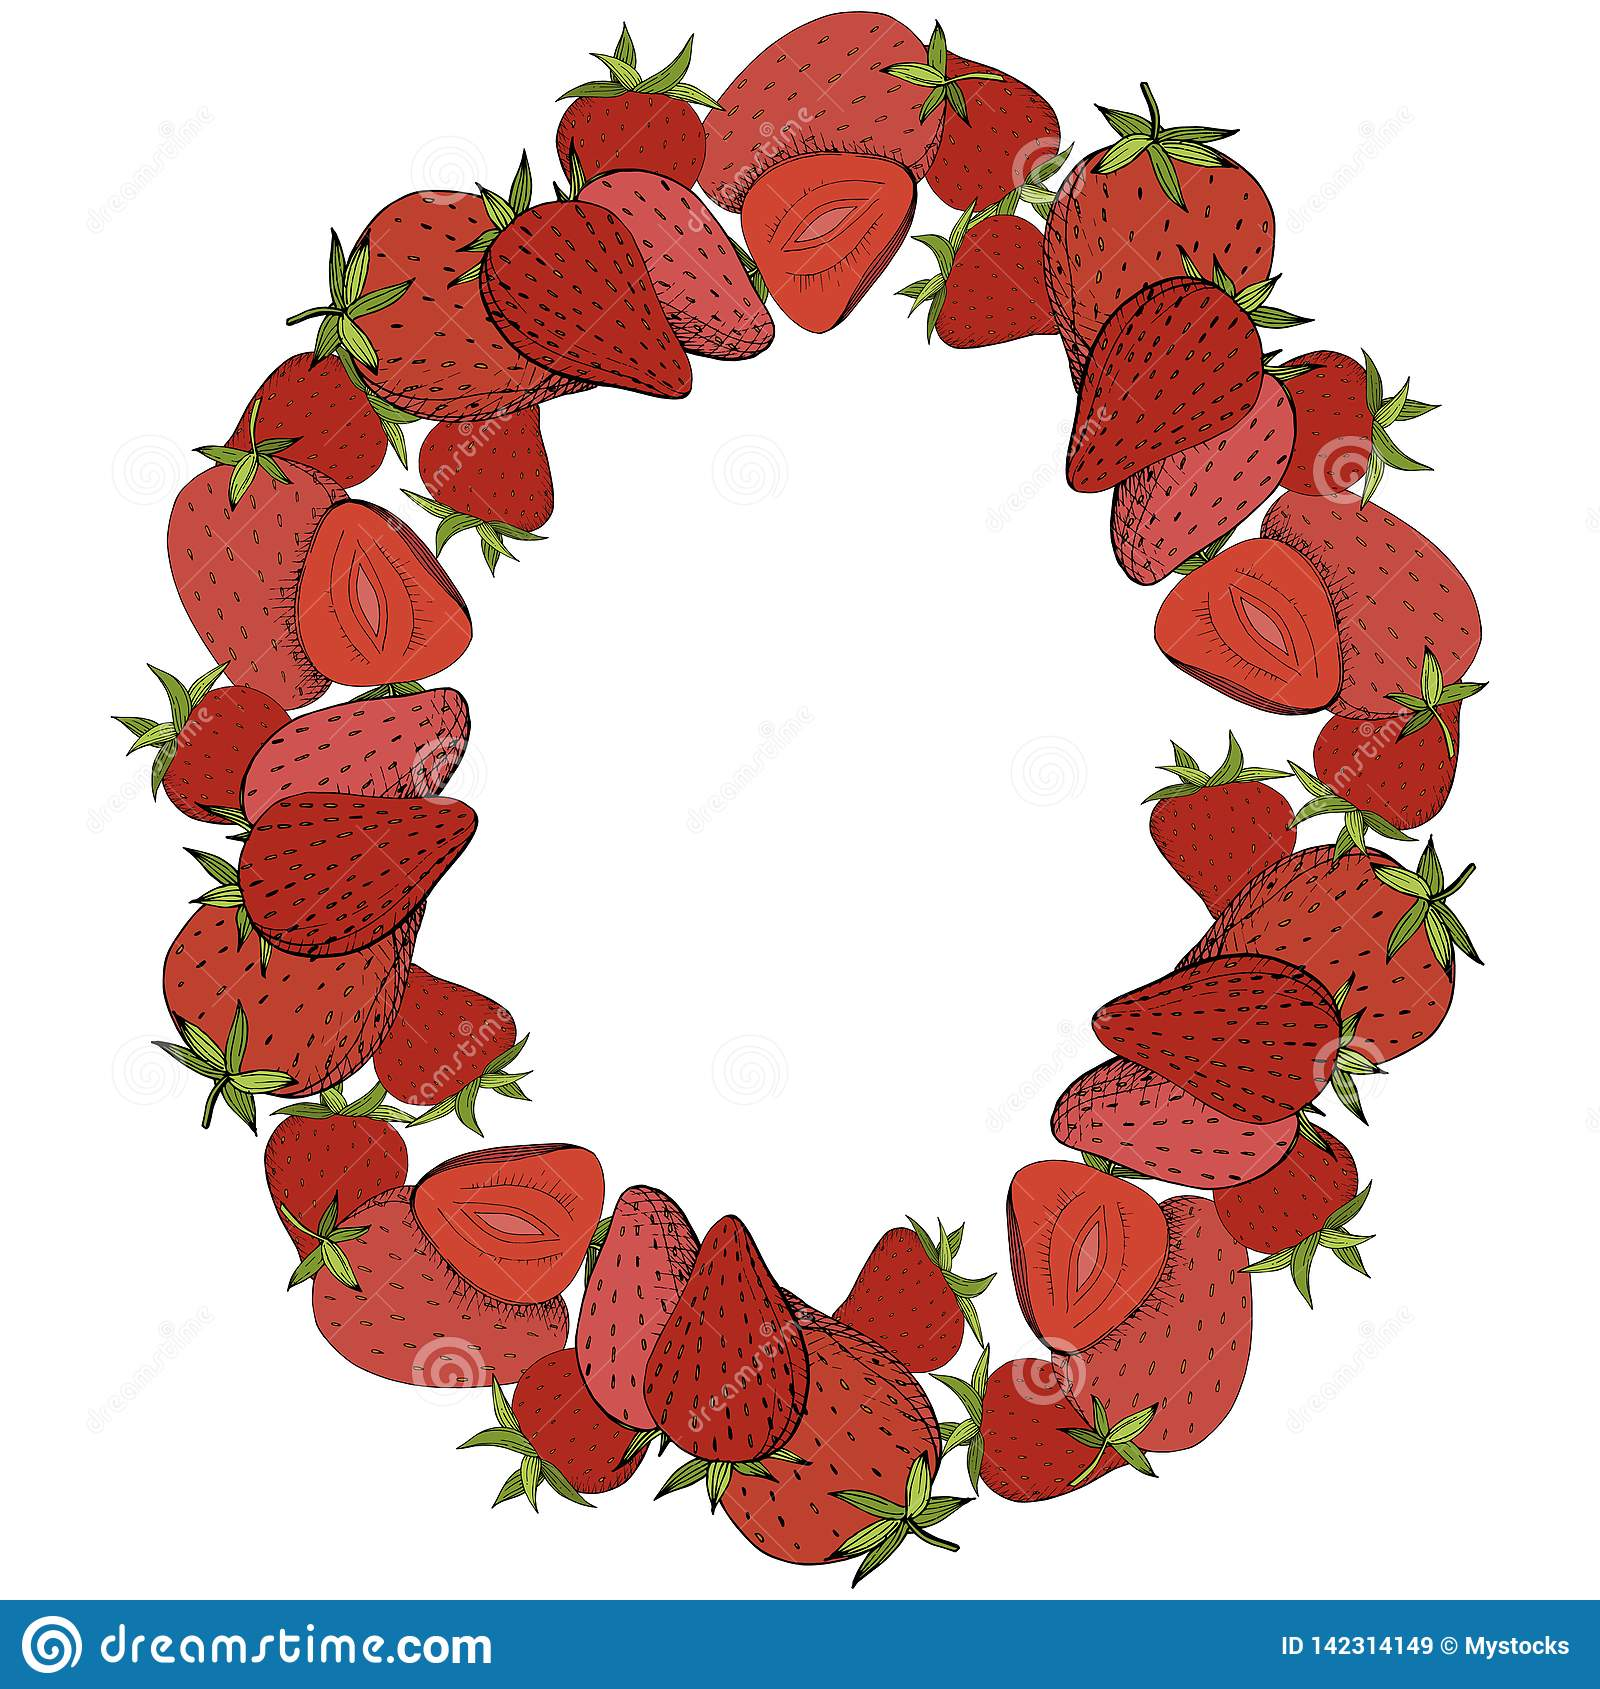 Vector Strawberry fresh fruit healthy food. Red and green engraved ink art. Frame border ornament square.